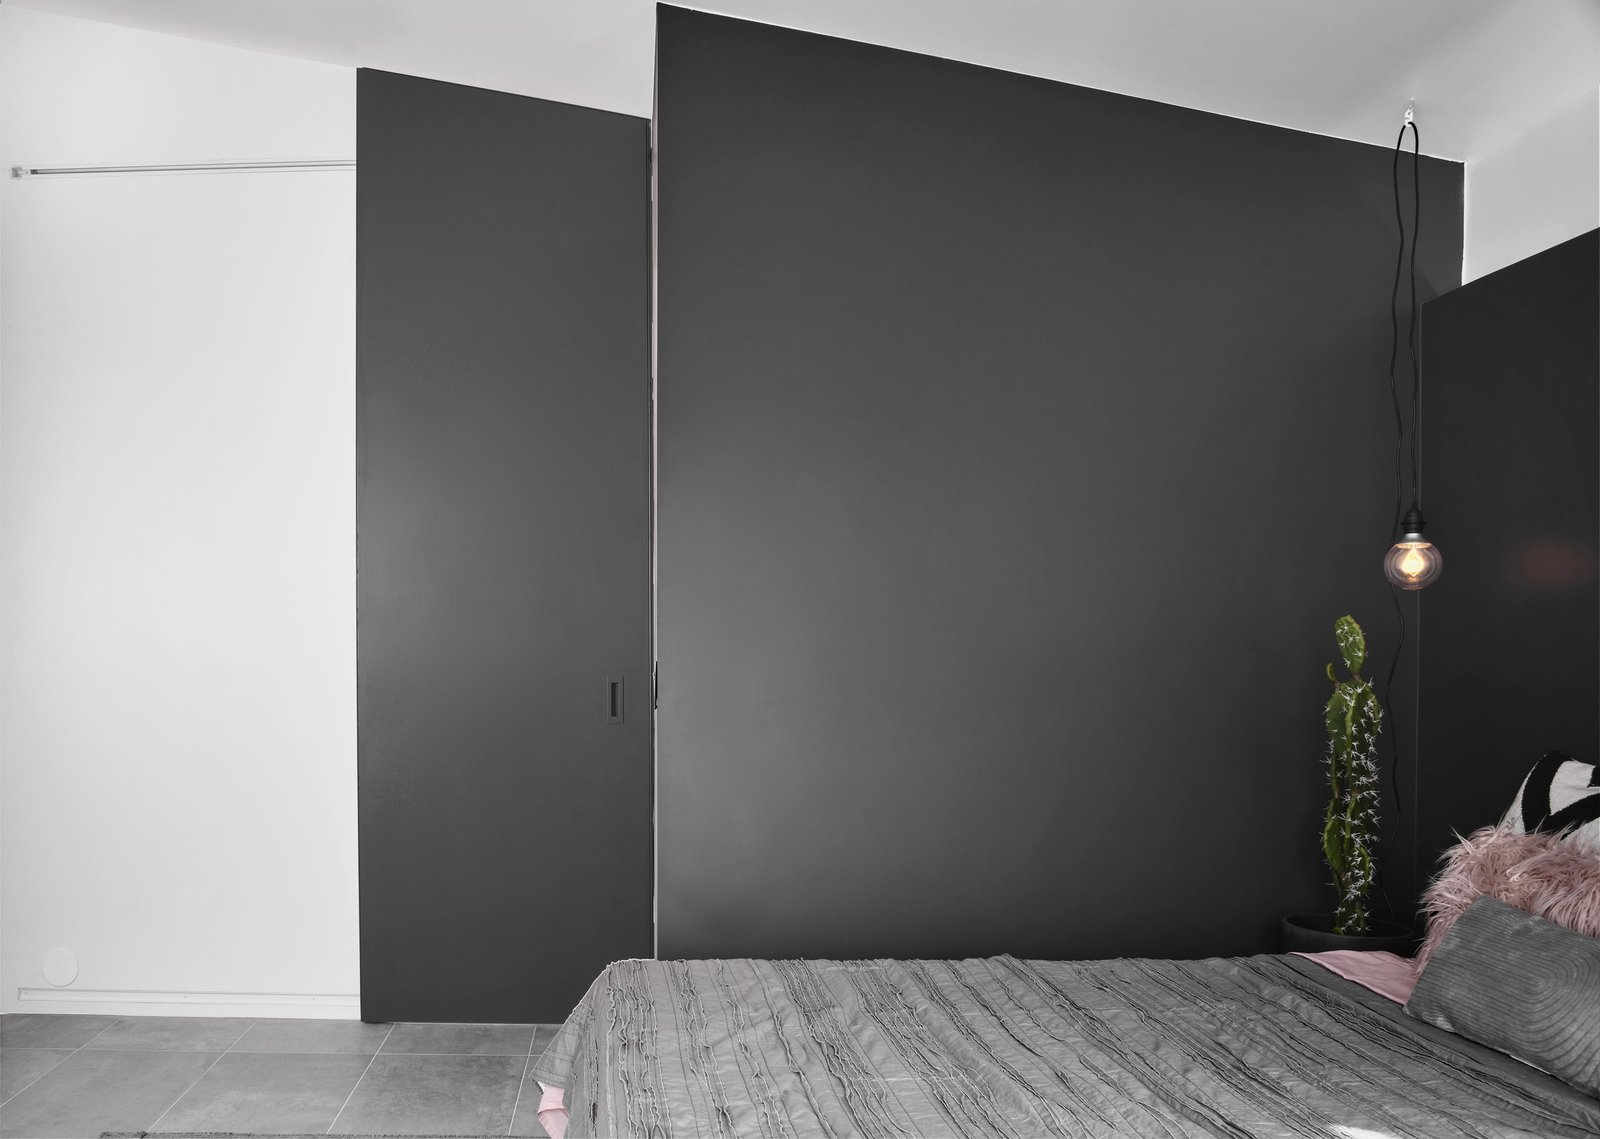 Doors, Interior, Wood, Metal, and Sliding Door Type The custom sliding bathroom door by Dotzler Design was made to disappear into the black wrap-around headboard of the bed.  Details